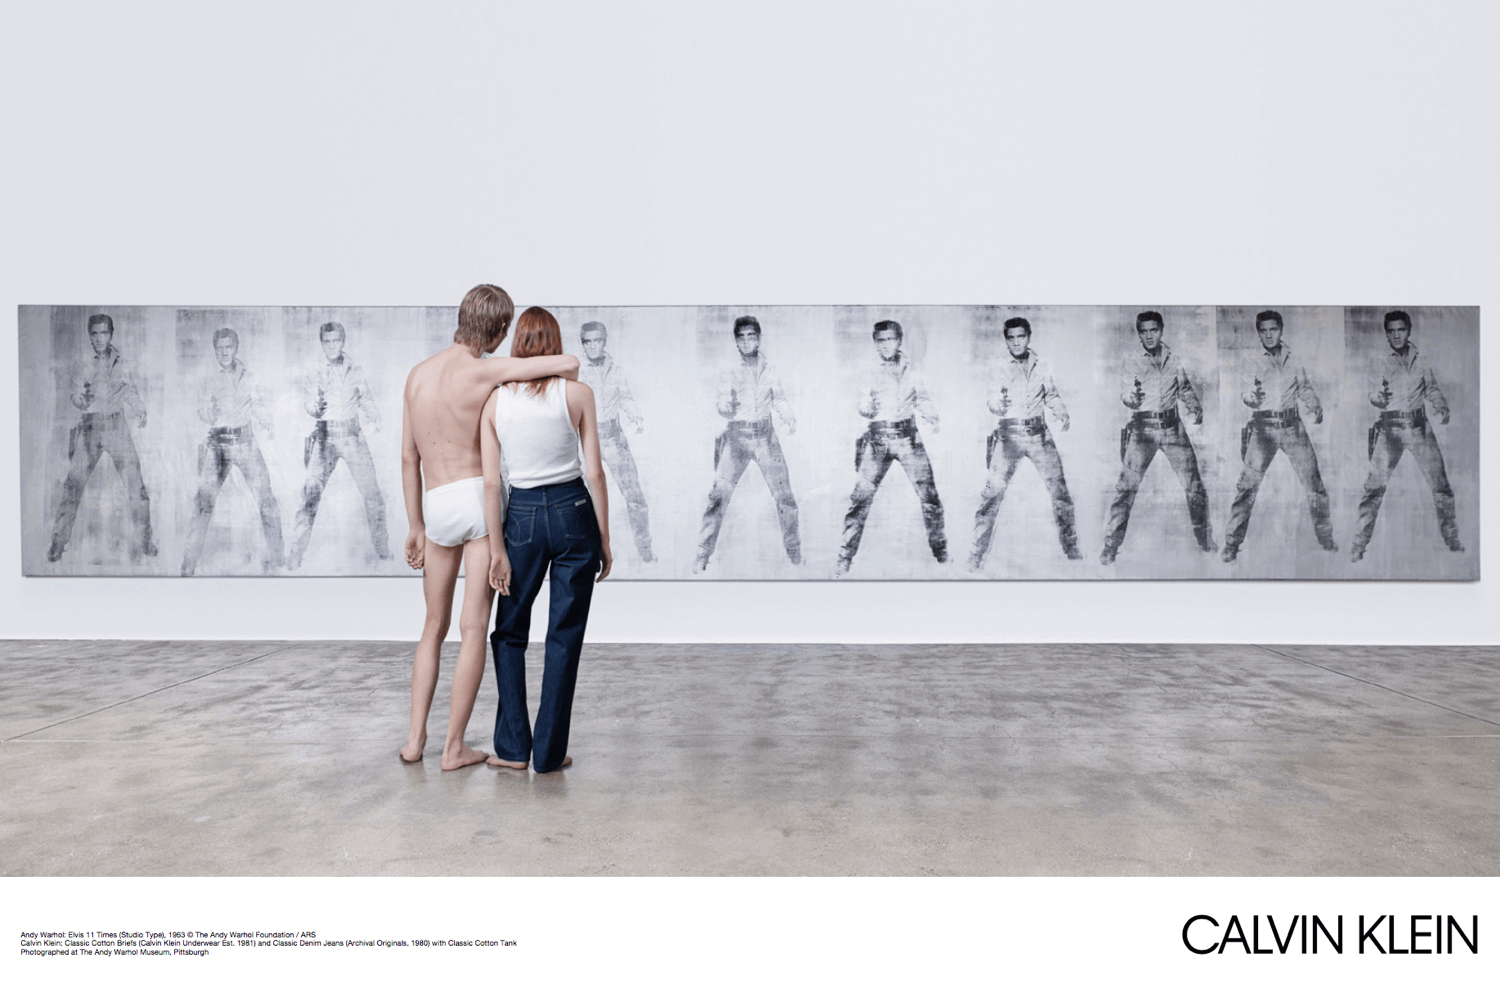 Image courtesy of Calvin Klein